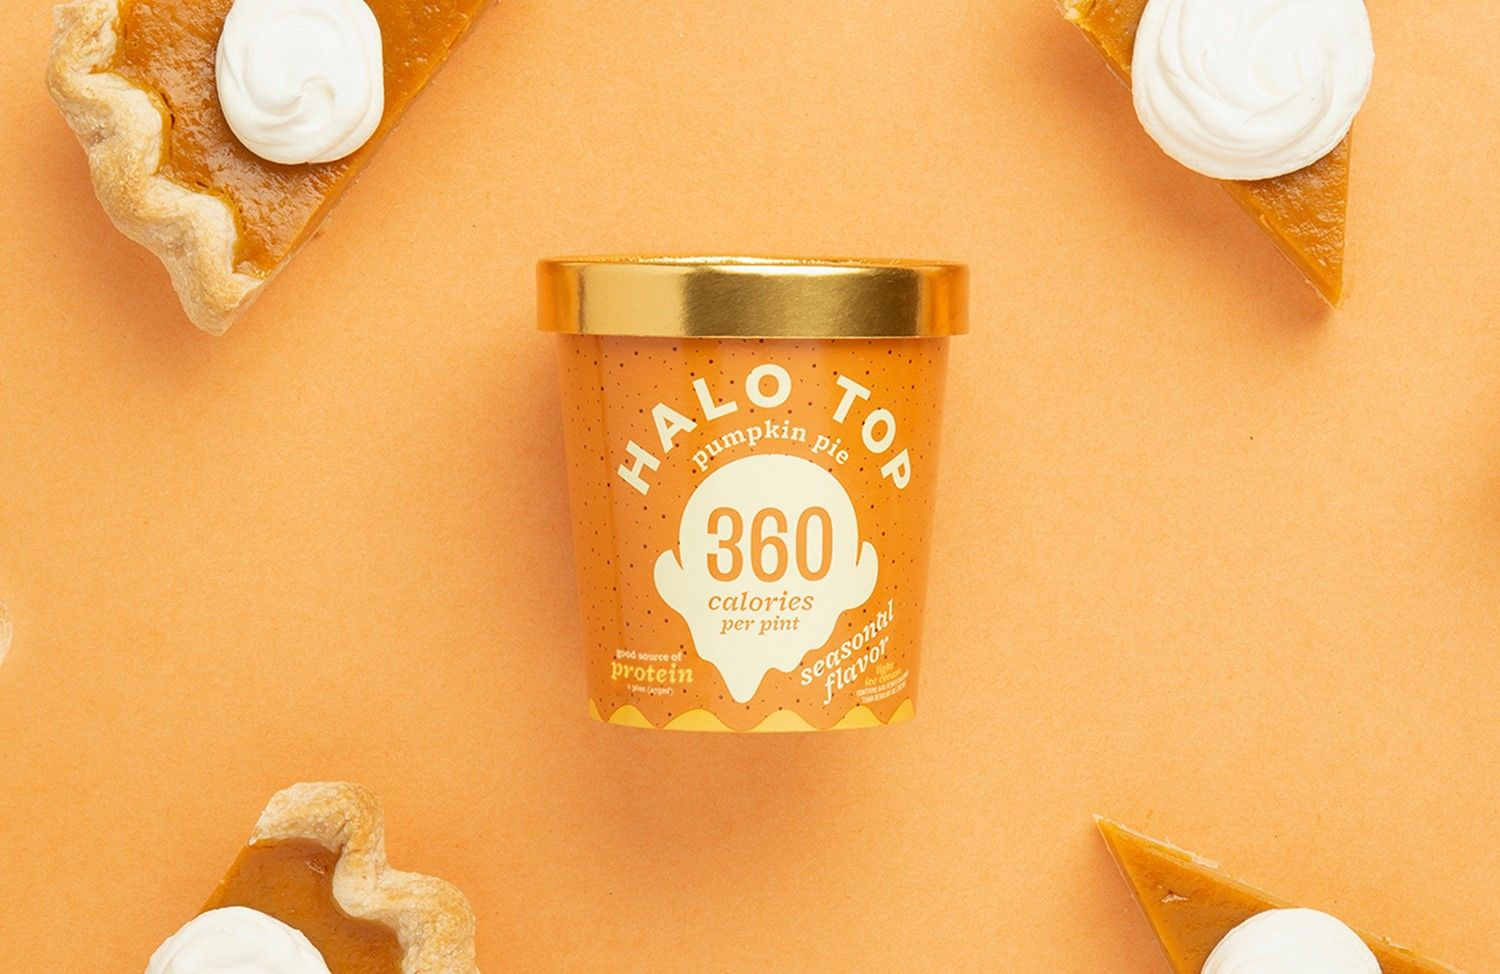 Halo Top To Give Americans A Free Pint Of Pumpkin Ice Cream Pumpkin Pie Ice Cream Pumpkin Ice Cream Pumpkin Pie